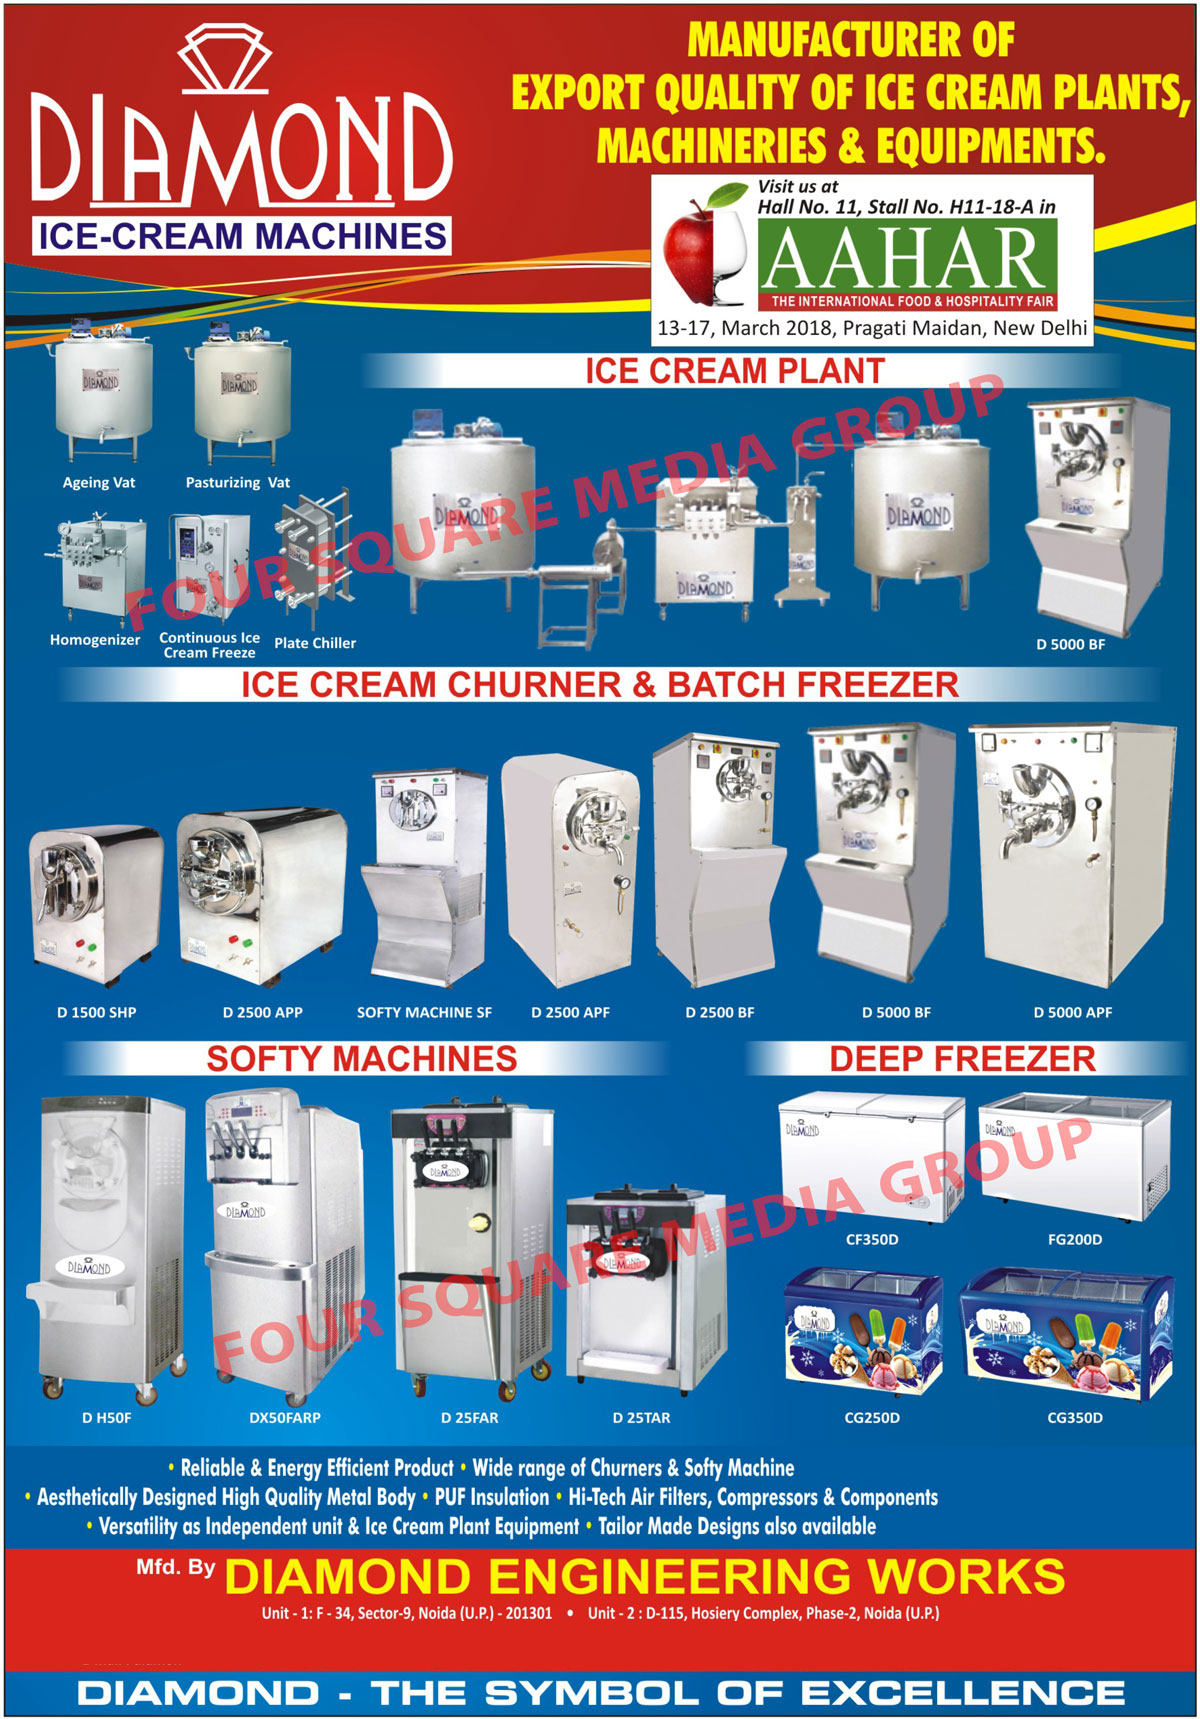 Softy Machines, Homogenizers, Continous Ice Cream Freezer, Churners, Softy Ice Cream Machines, Beater Fans, Wrought Iron, Candle Stand, Metal Handicrafts, Continuous Ice Cream Freezer, Ice Cream Machines, Ice Cream Plants, Ice Cream Equipments